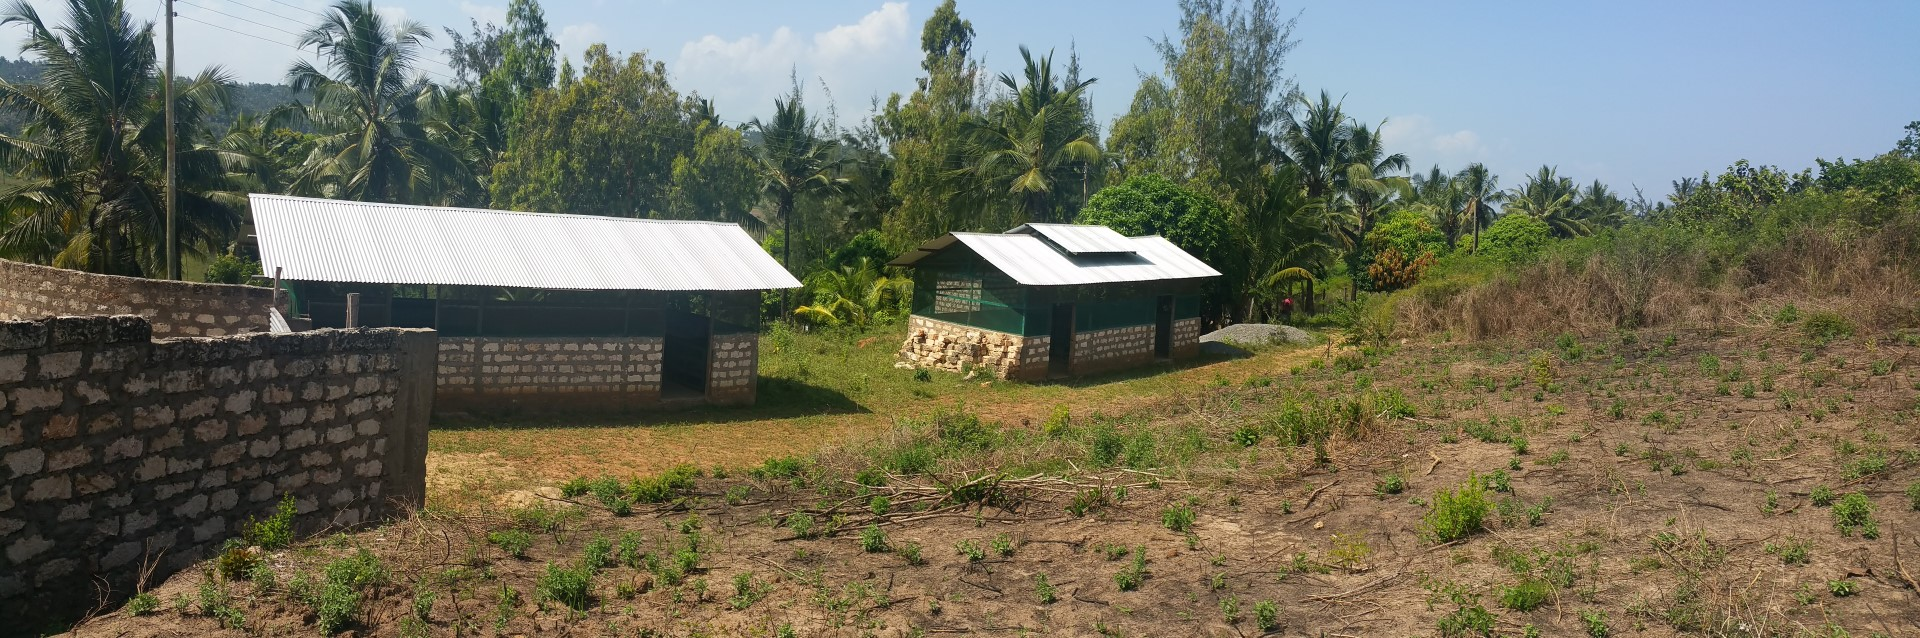 9 acre farm for sale in Vipingo behind sisal field